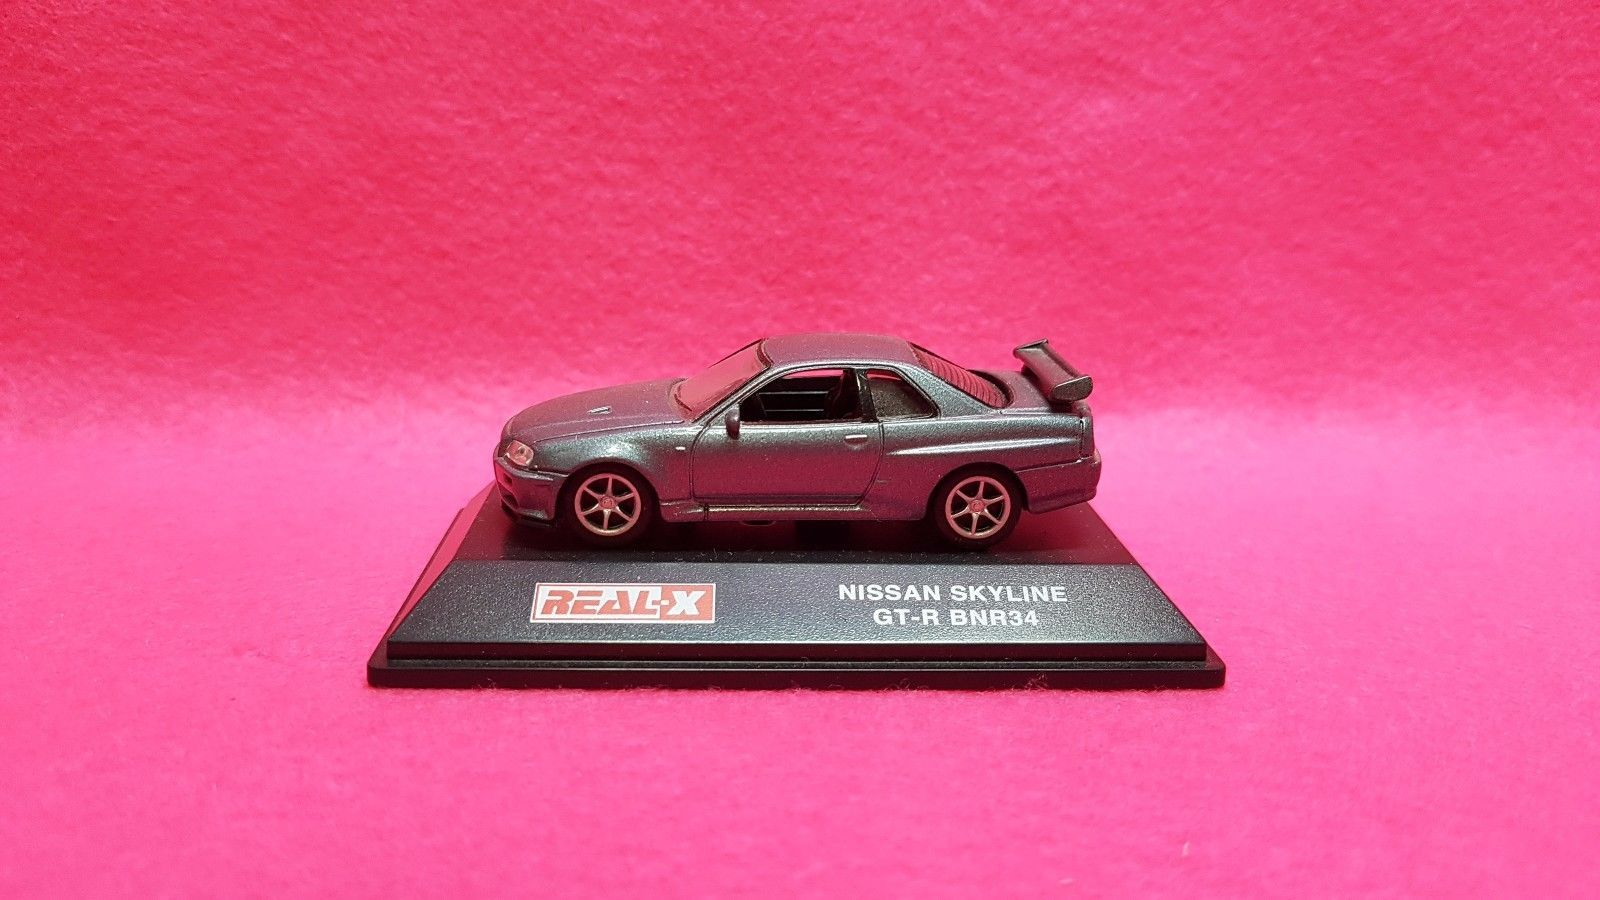 Pink Nissan Skyline Gtr R34 1 72 Real X Gt R Bnr34 And Similar Items Gray Diecast Car Model